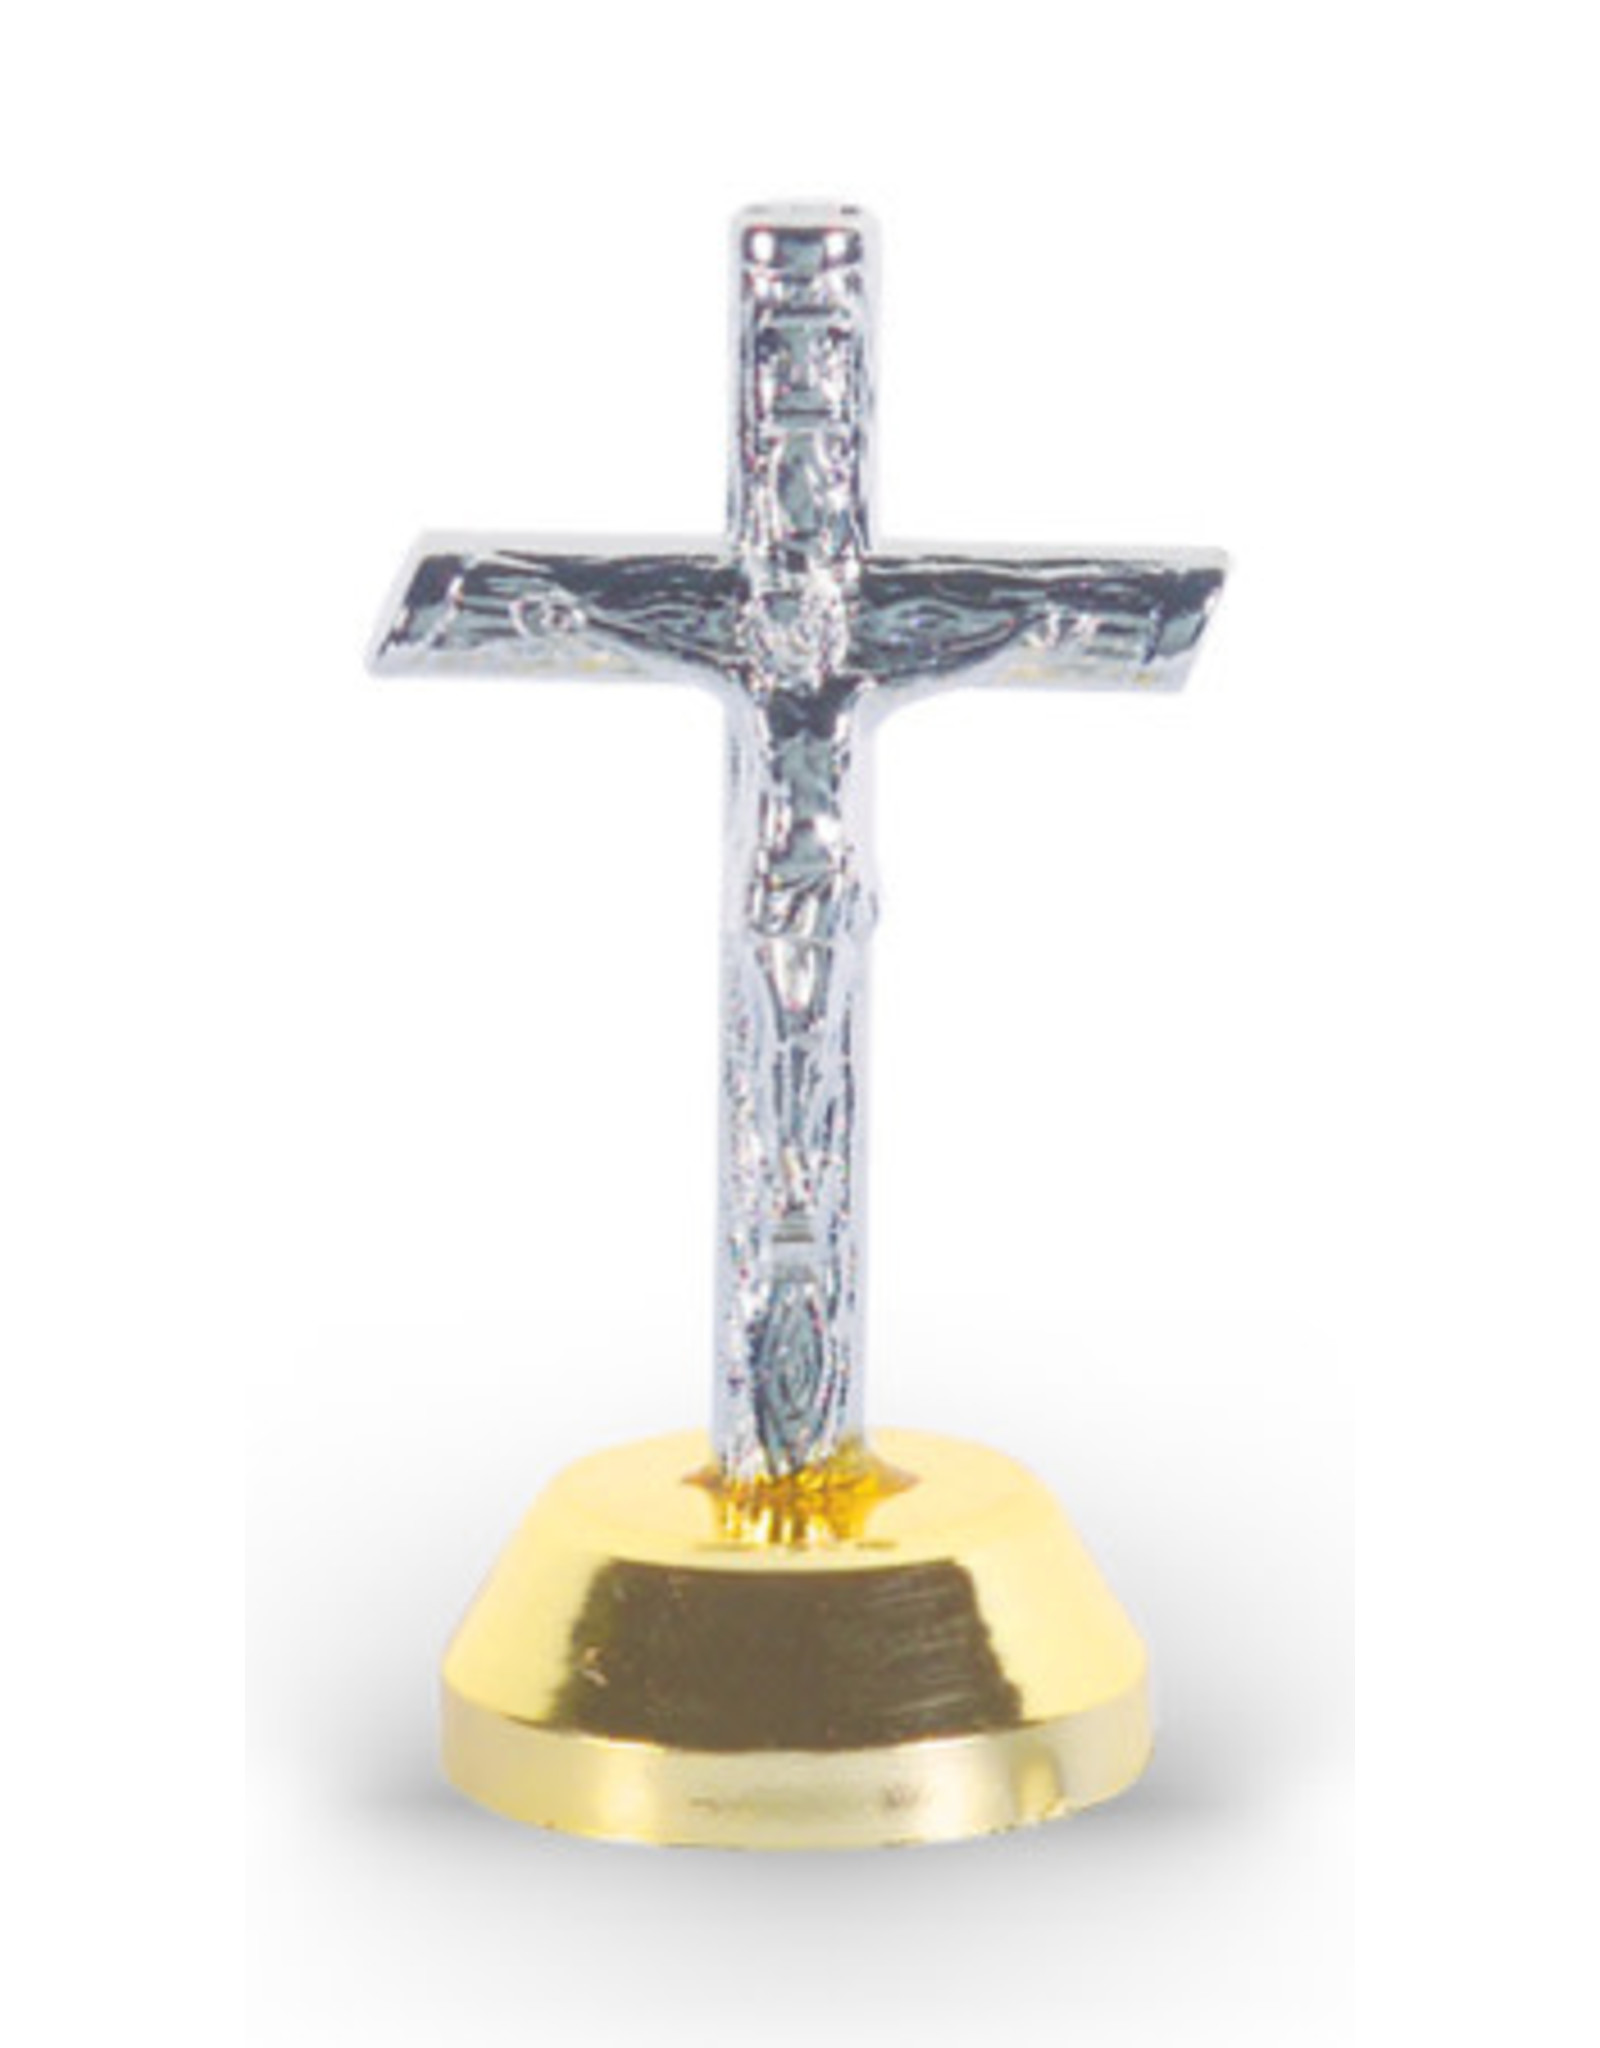 """Hirten 1 3/4"""" Wood Look Pewter Auto Crucifix with Adhesive Bottom"""